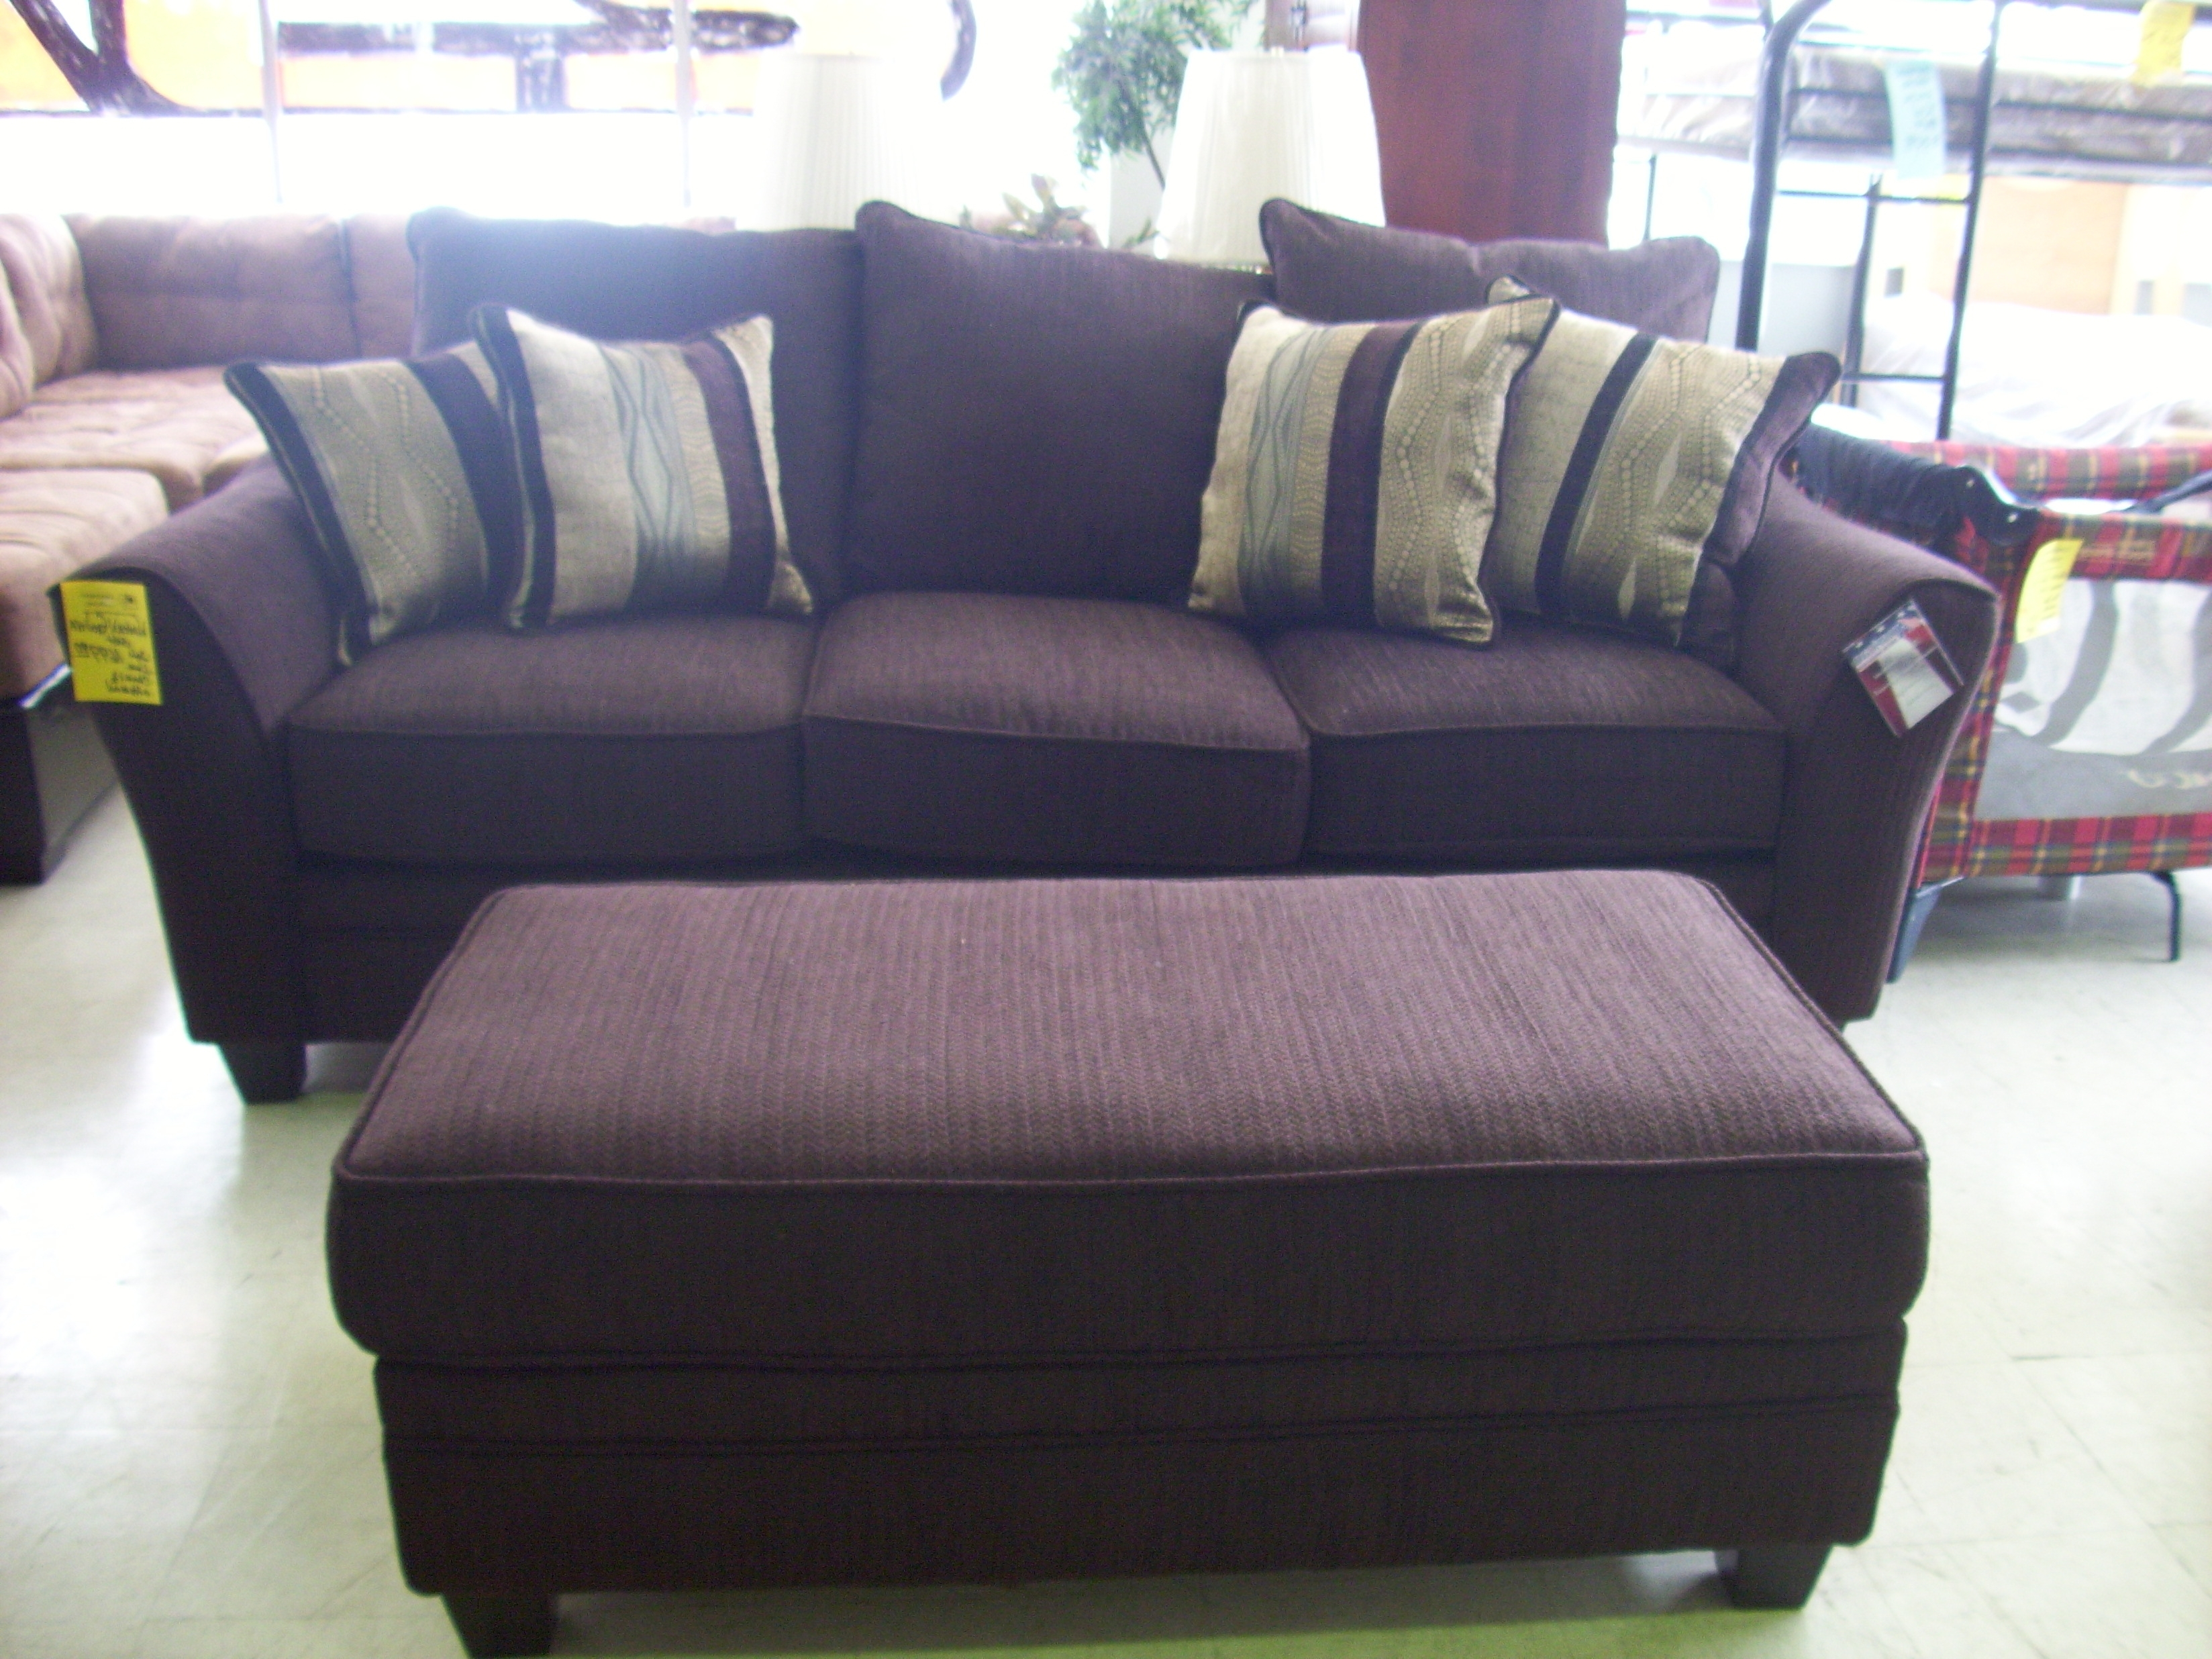 Most Current Oversized Sofa – Helpformycredit Pertaining To Oversized Sofa Chairs (View 7 of 20)